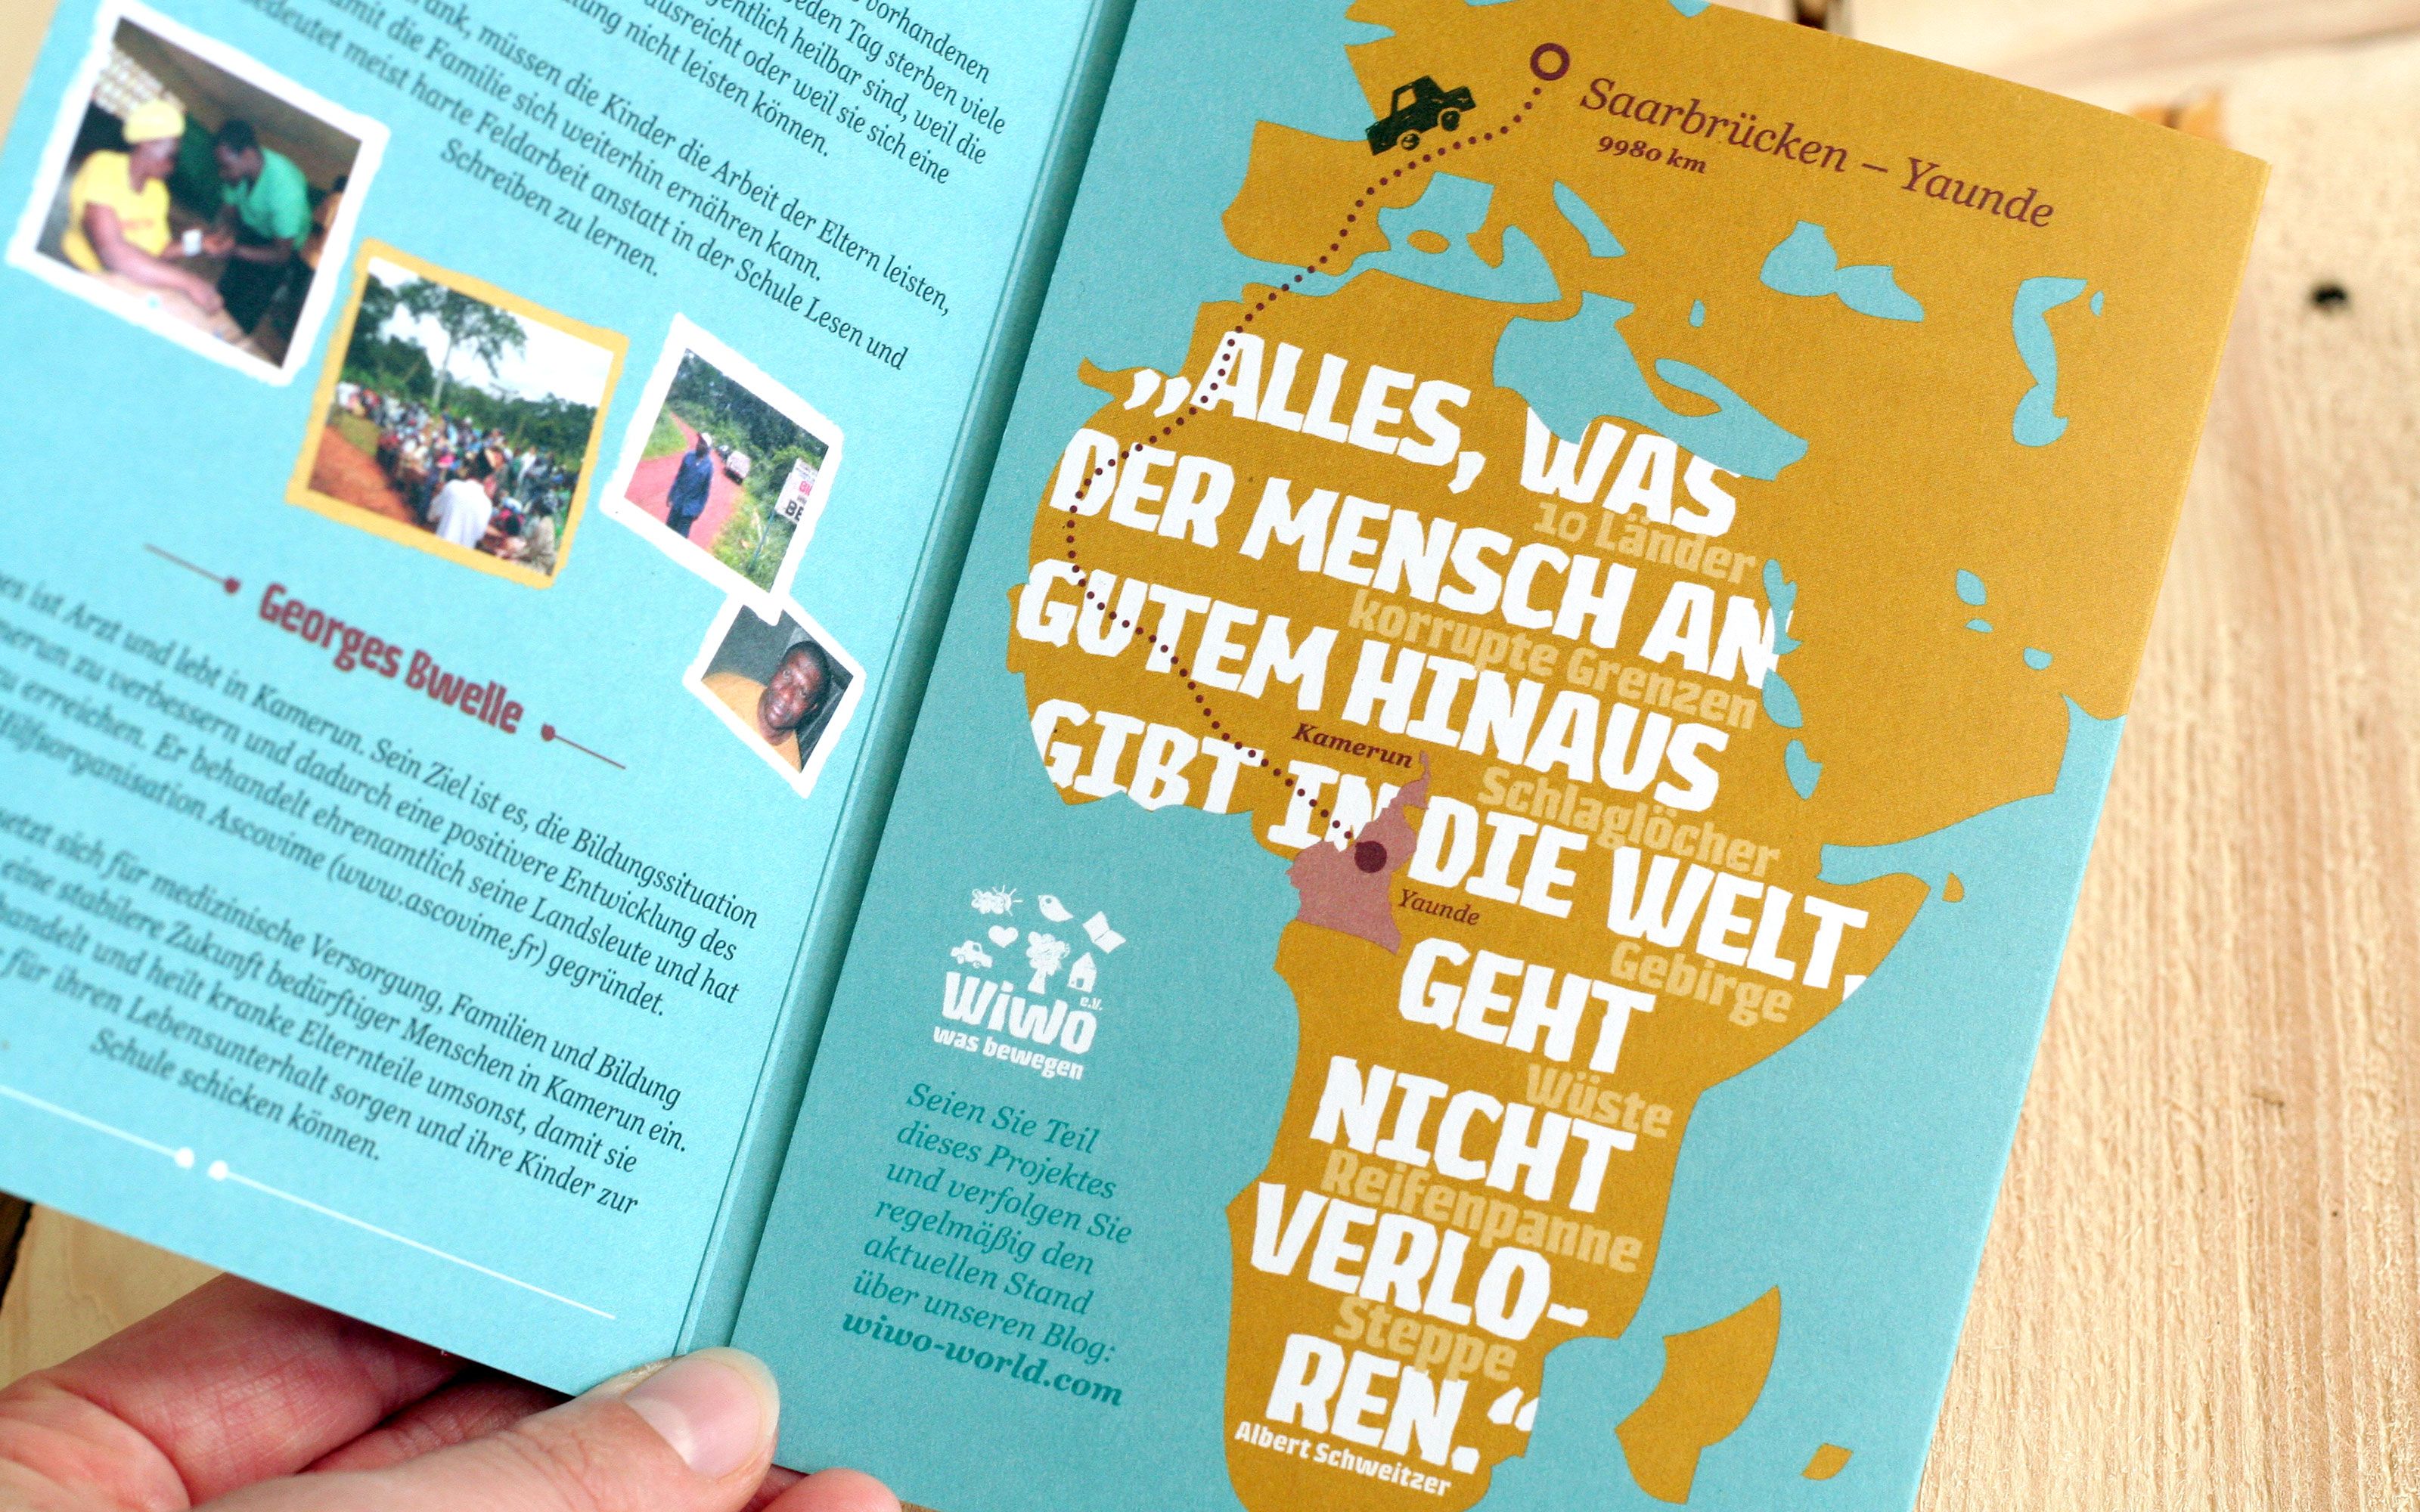 maniana-design wiwo aktionsflyer karte